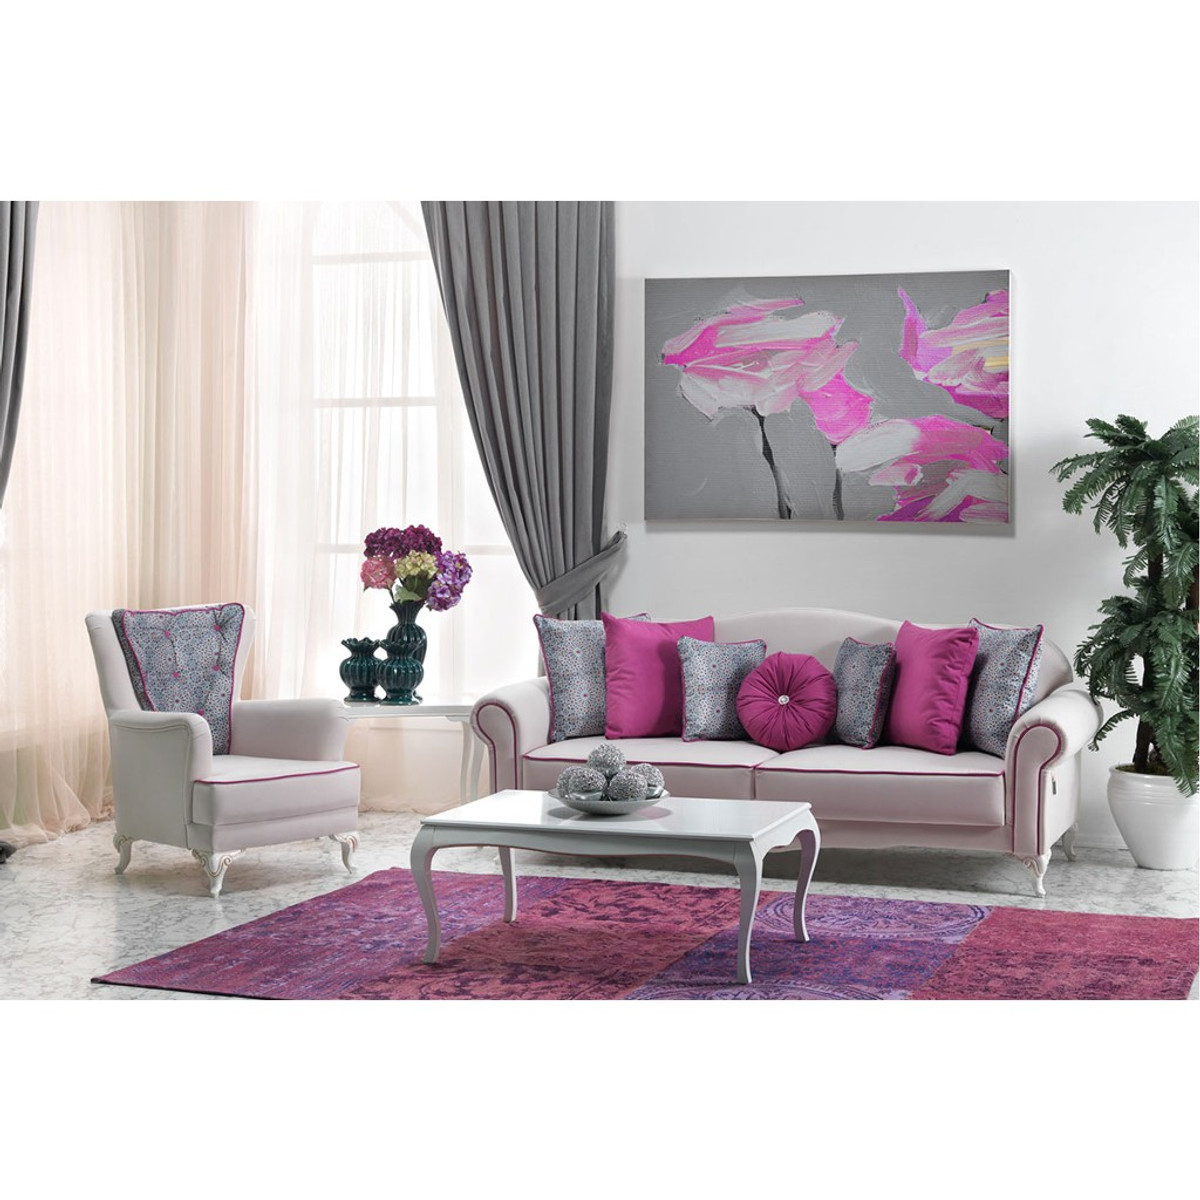 casa padrino neo barock bergere sessel milano wei pink hotel m bel sofa sets. Black Bedroom Furniture Sets. Home Design Ideas